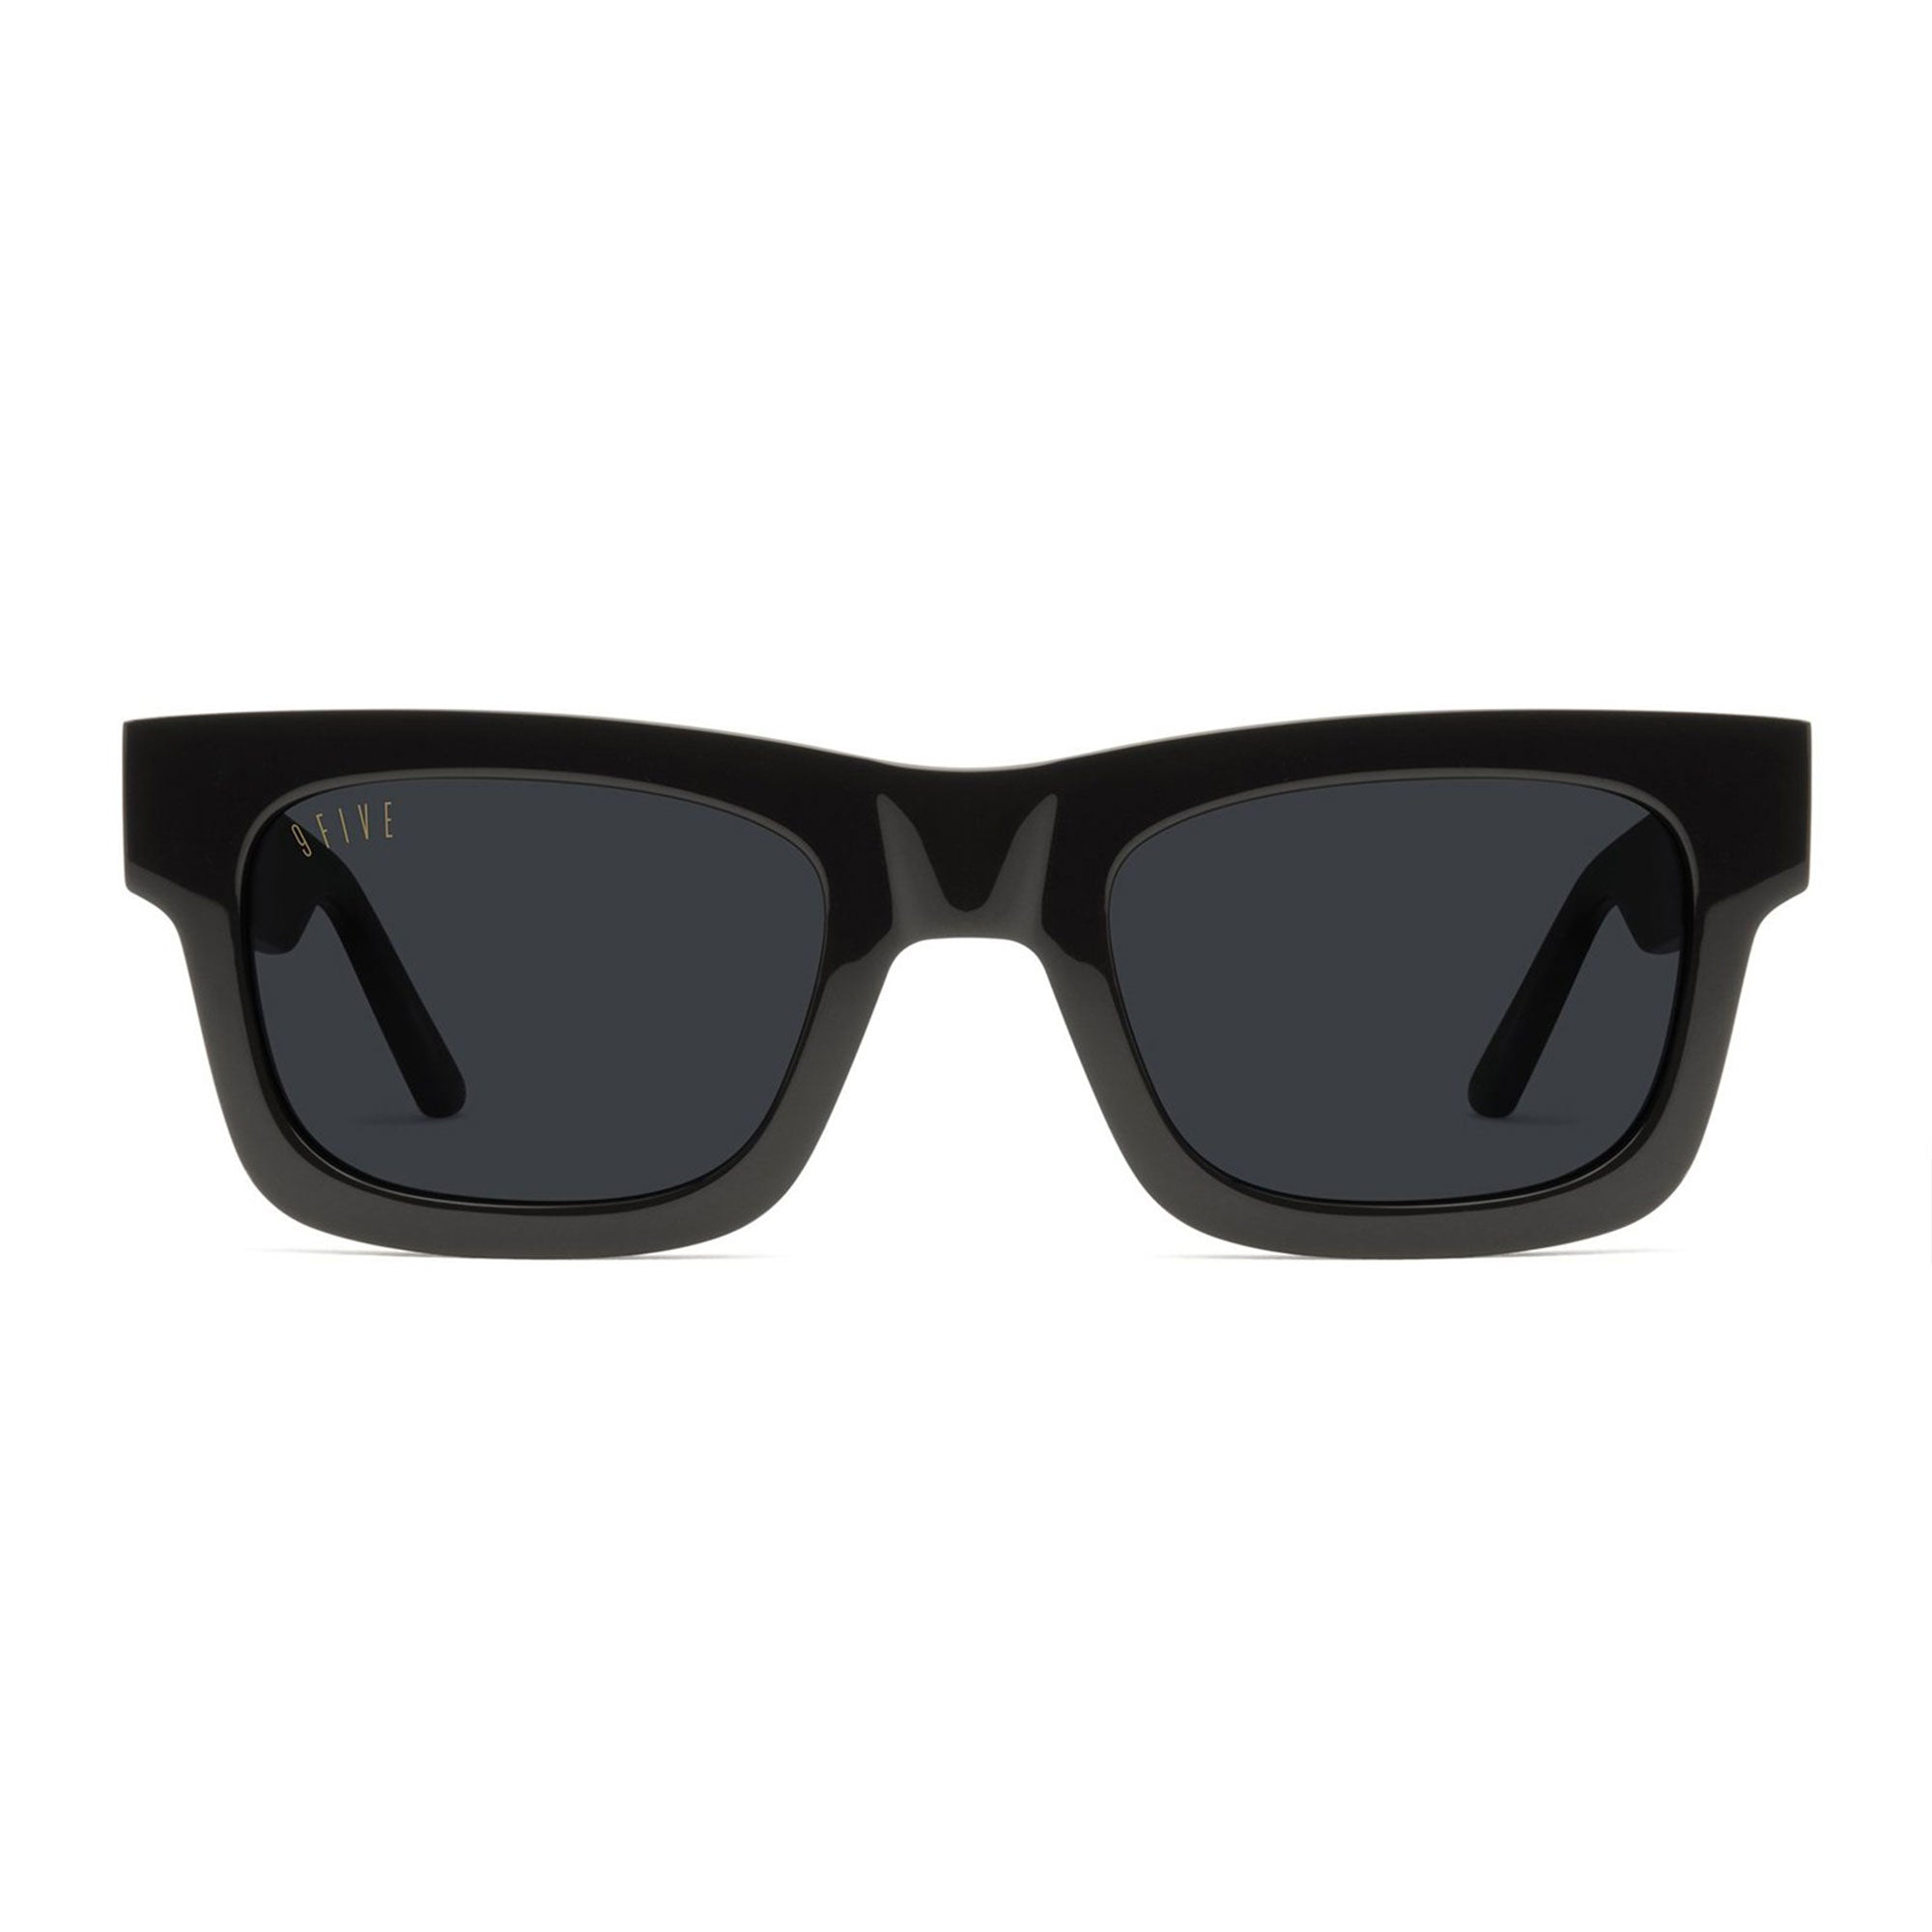 9 Five Ayden Sunglasses Product Photo #1